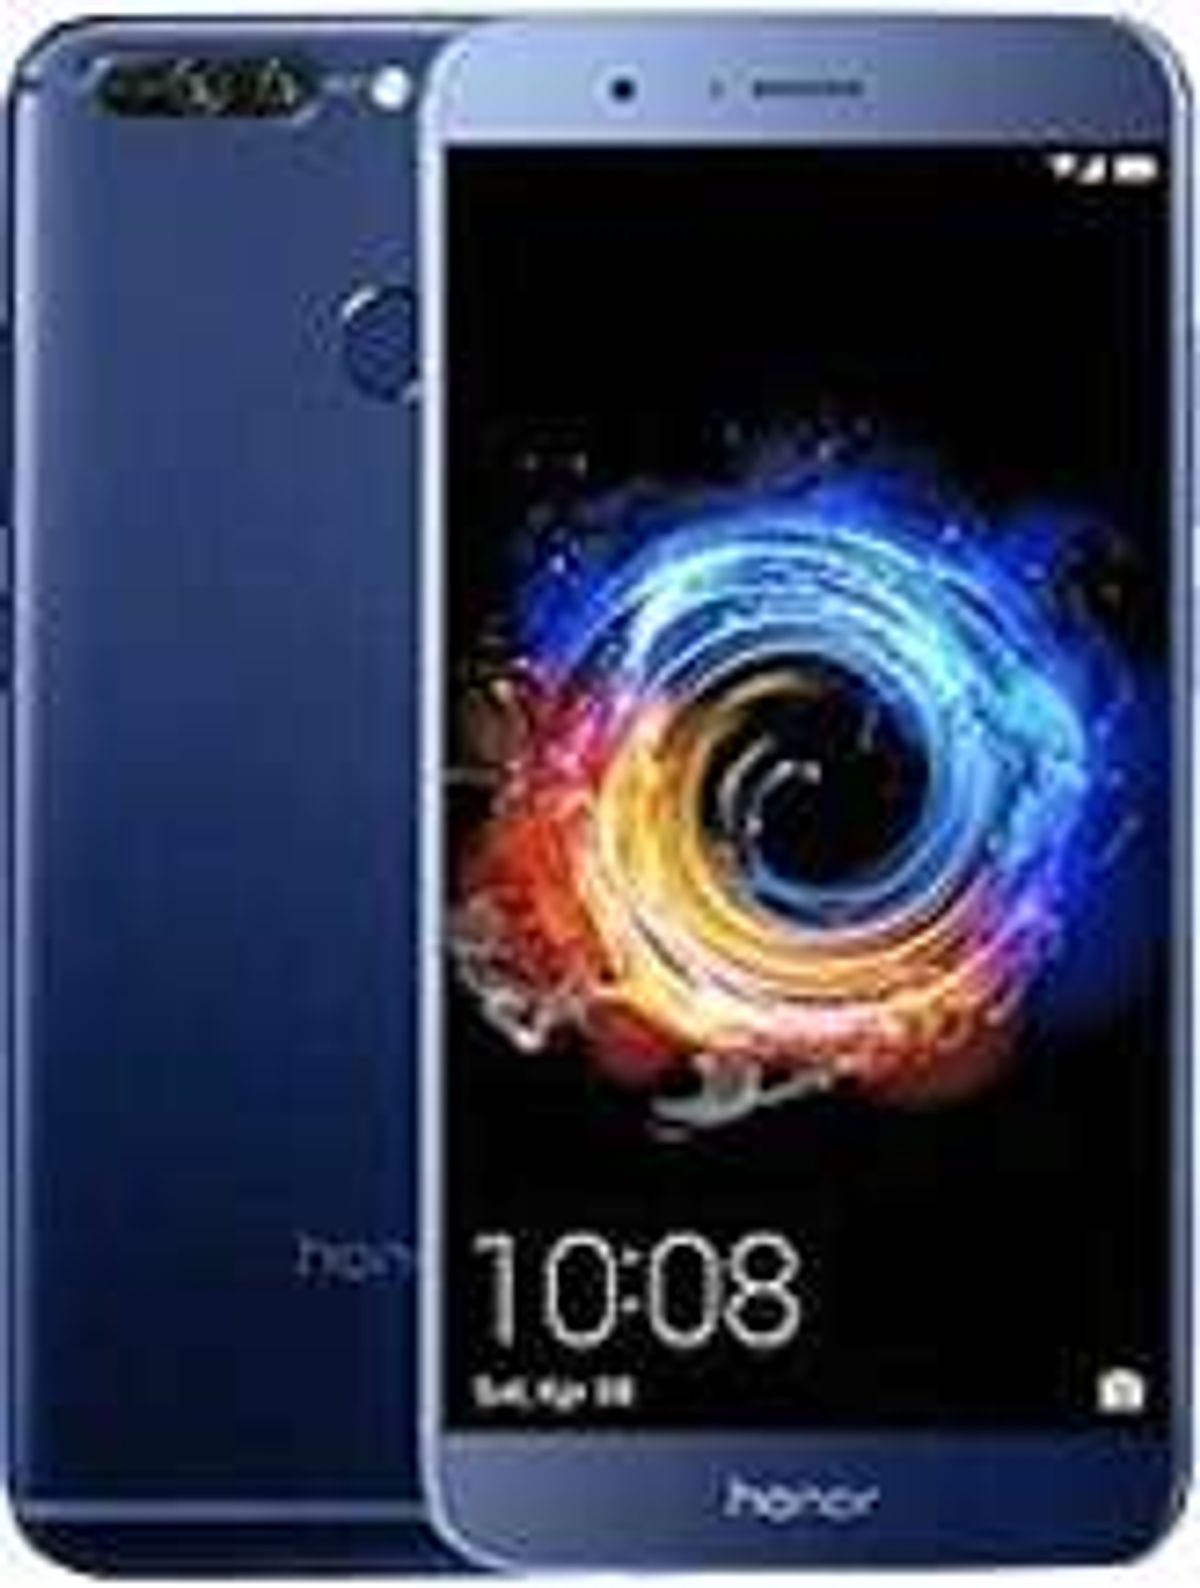 Best Volte Phones in India - August 2019 | Digit in